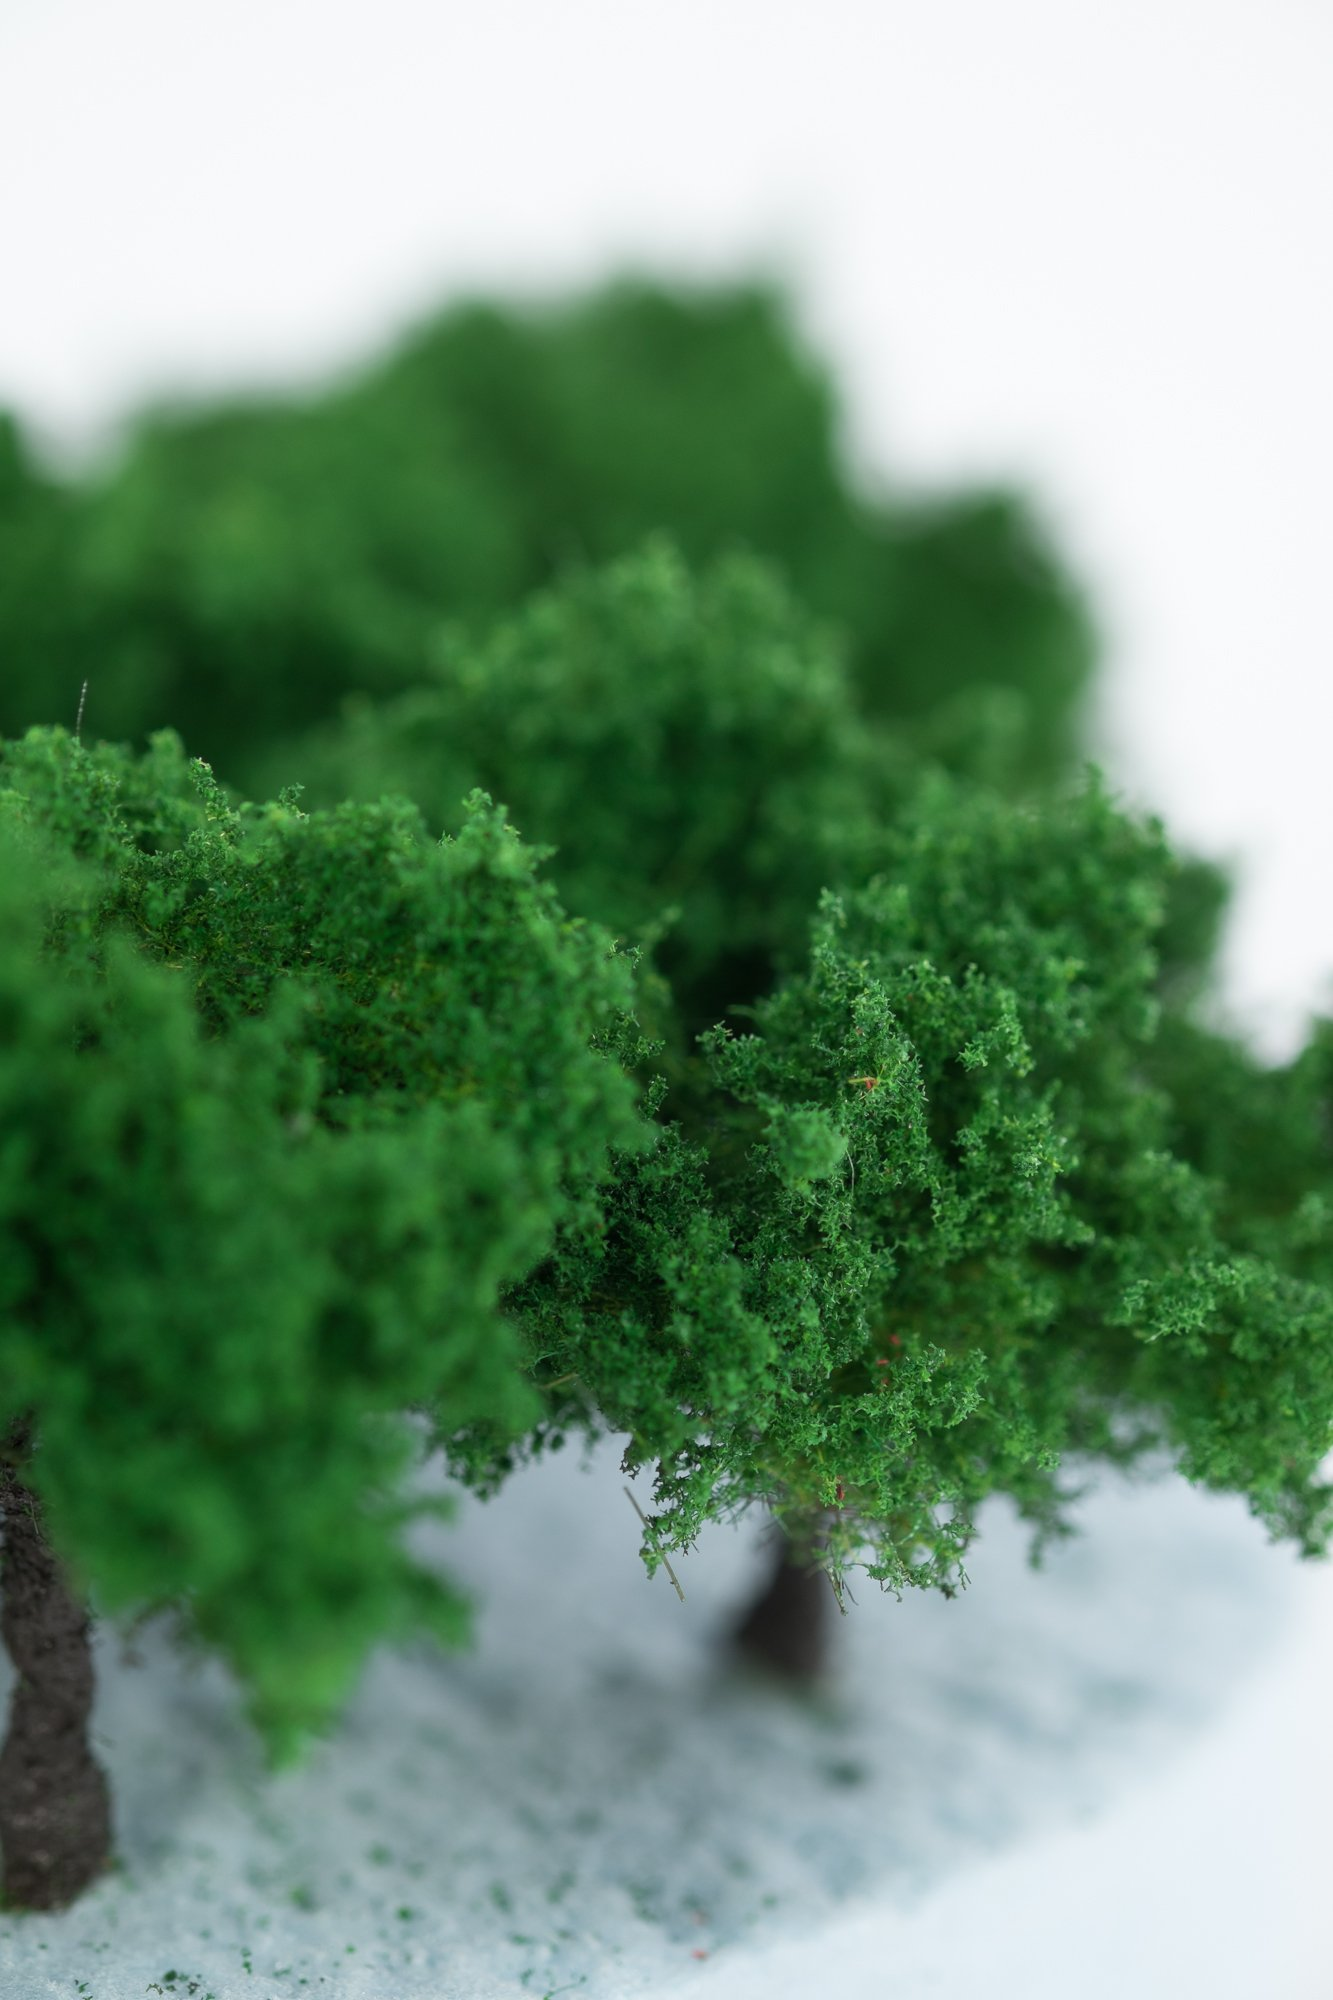 Closeup of foliage on regular dark green model bushes. Made from high quality model supplies by Primo Models.